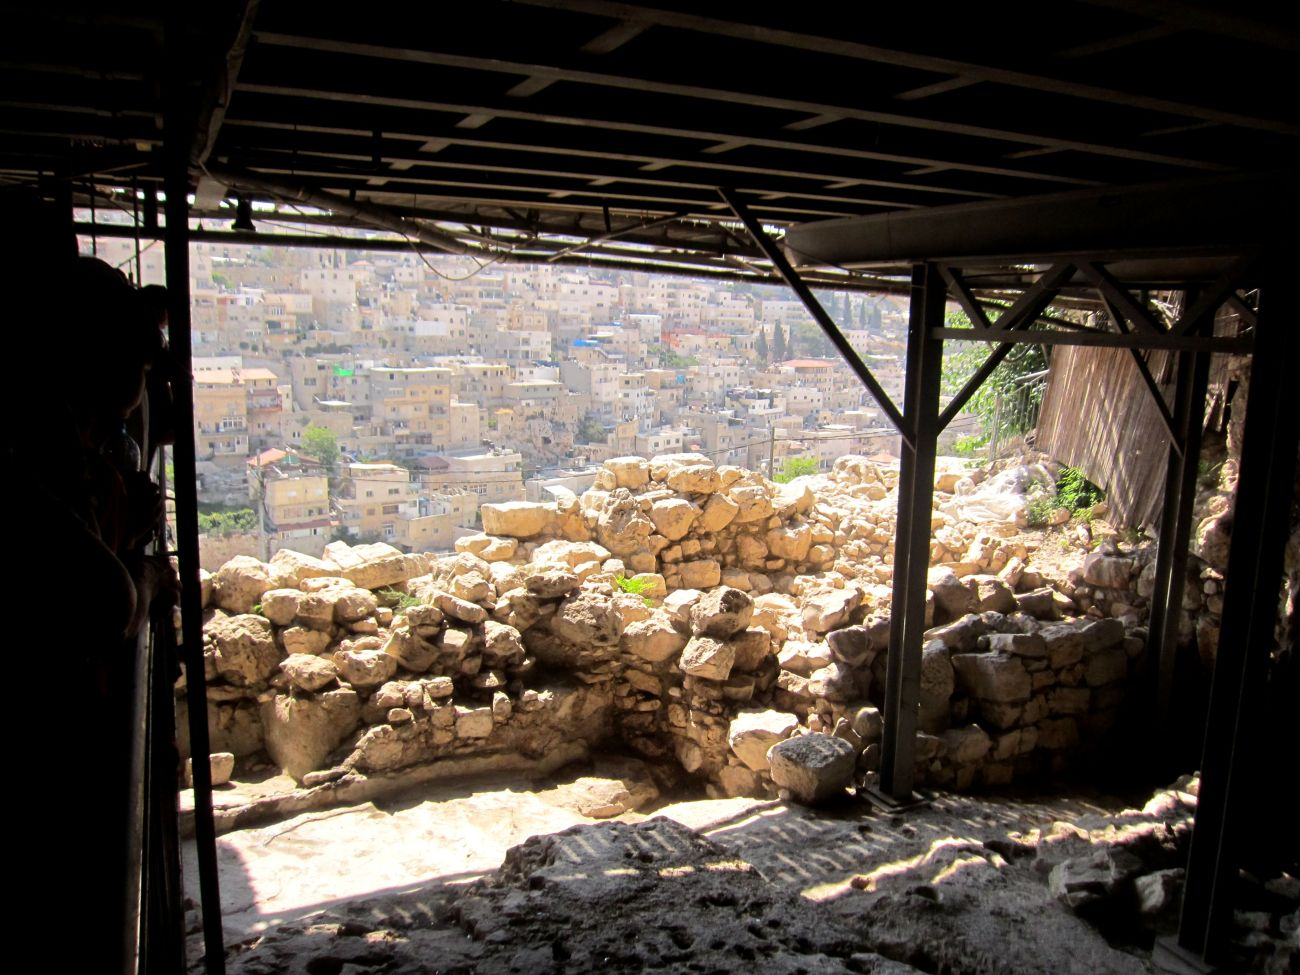 Elef_Millim_-_City_of_David_-_ovedc_-_06_t.